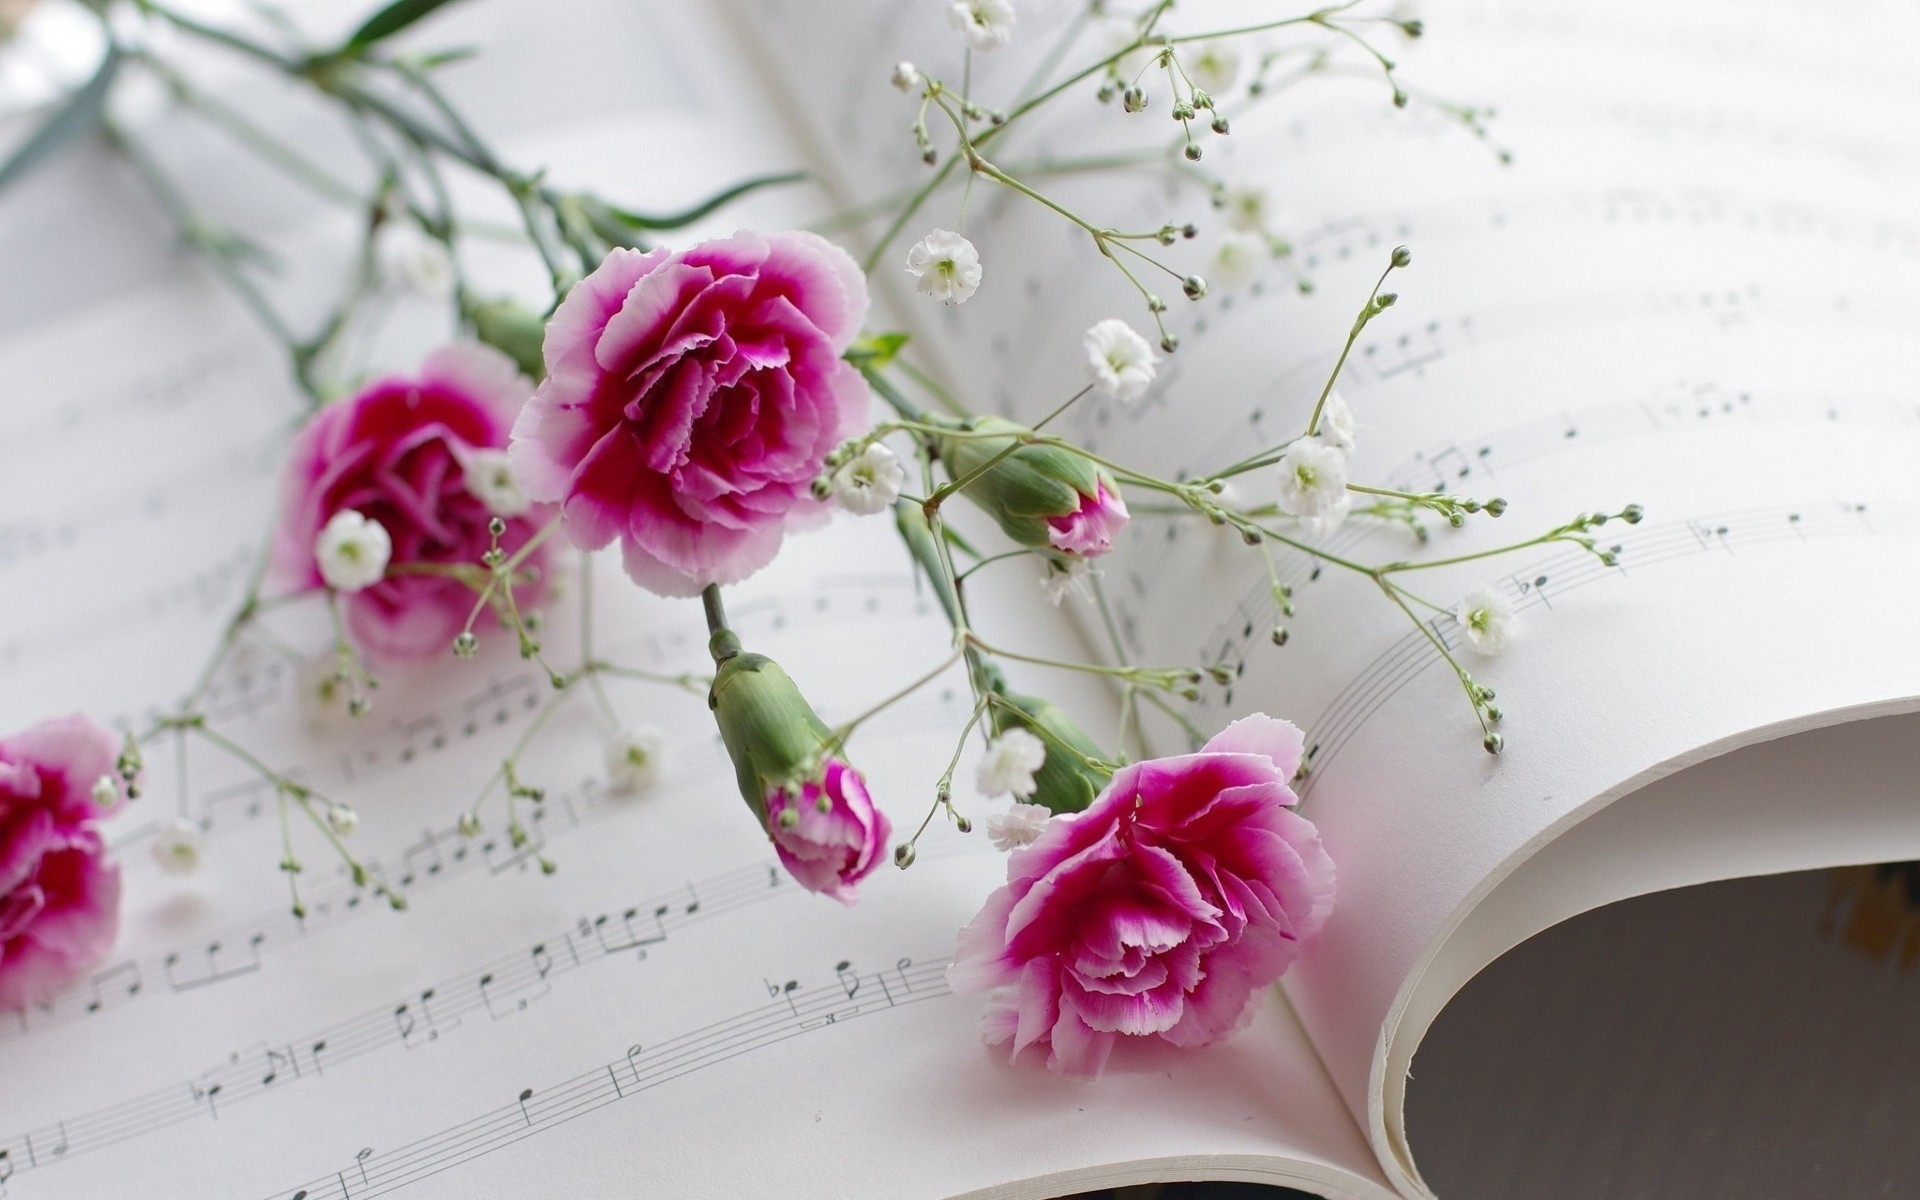 Pink flowers and music wallpaper allwallpaper 7114 pc en pink flowers and music wallpaper mightylinksfo